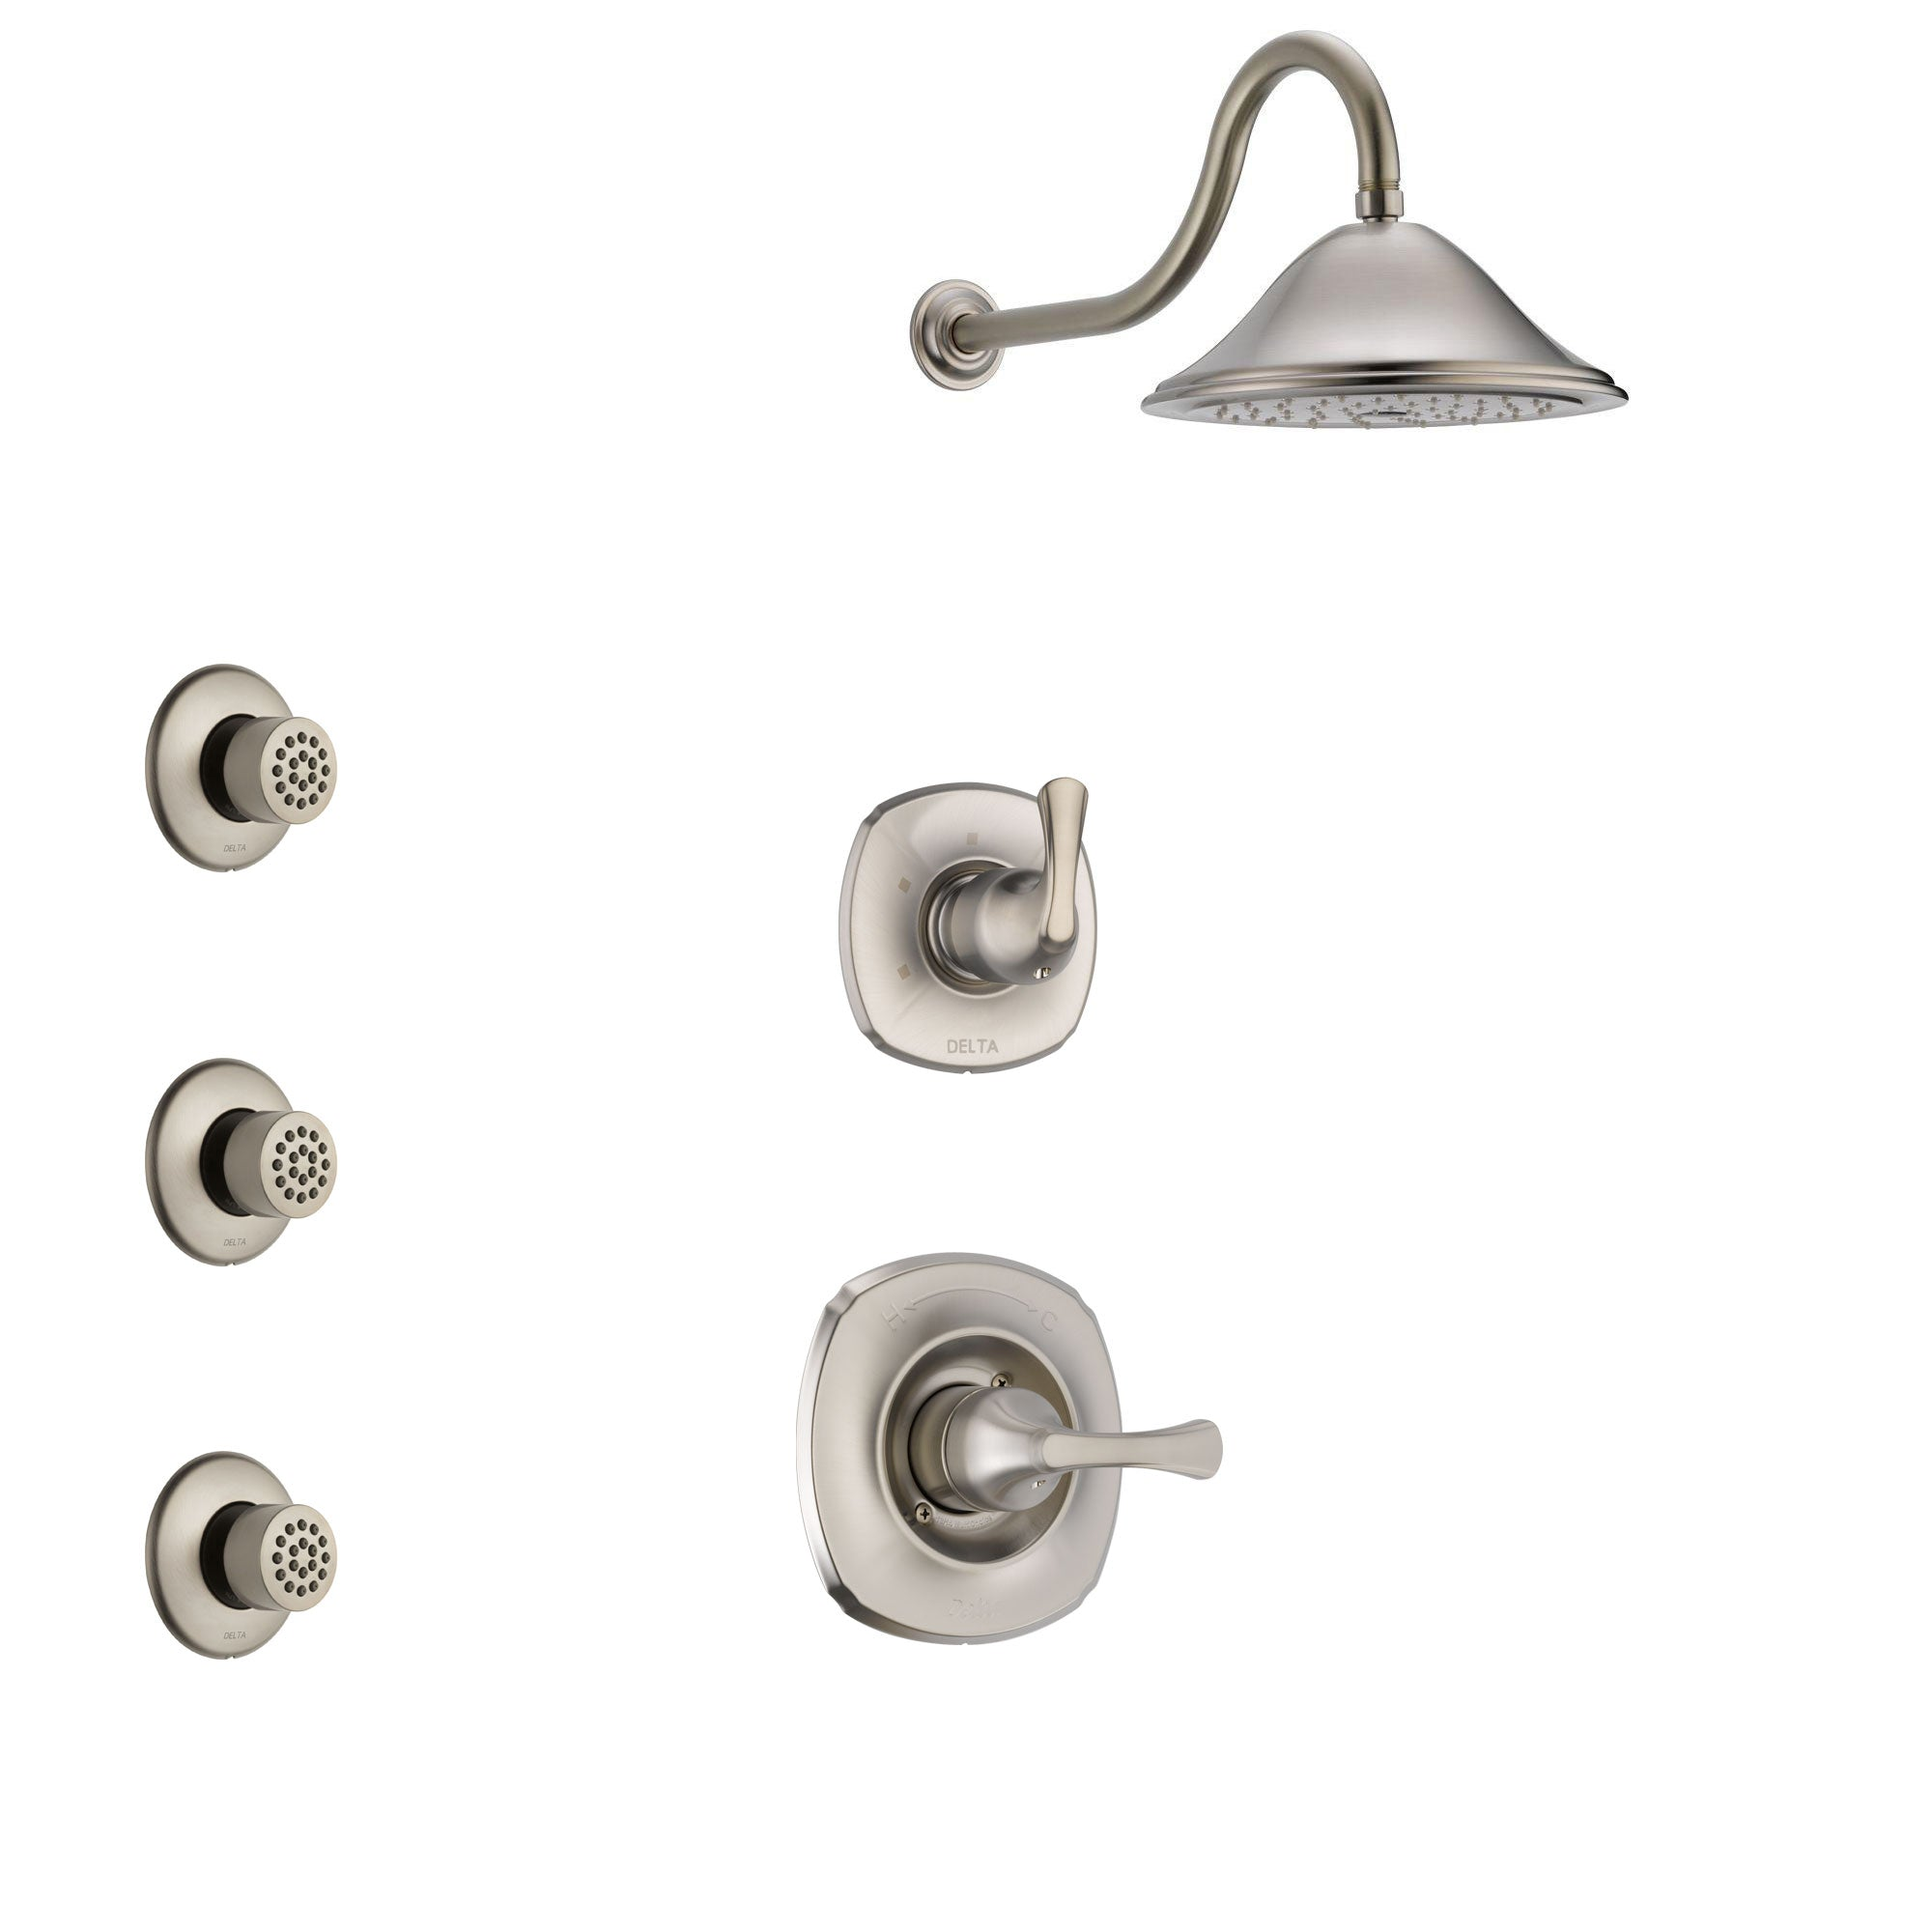 Delta Addison Stainless Steel Finish Shower System with Control Handle, 3-Setting Diverter, Showerhead, and 3 Body Sprays SS1492SS3